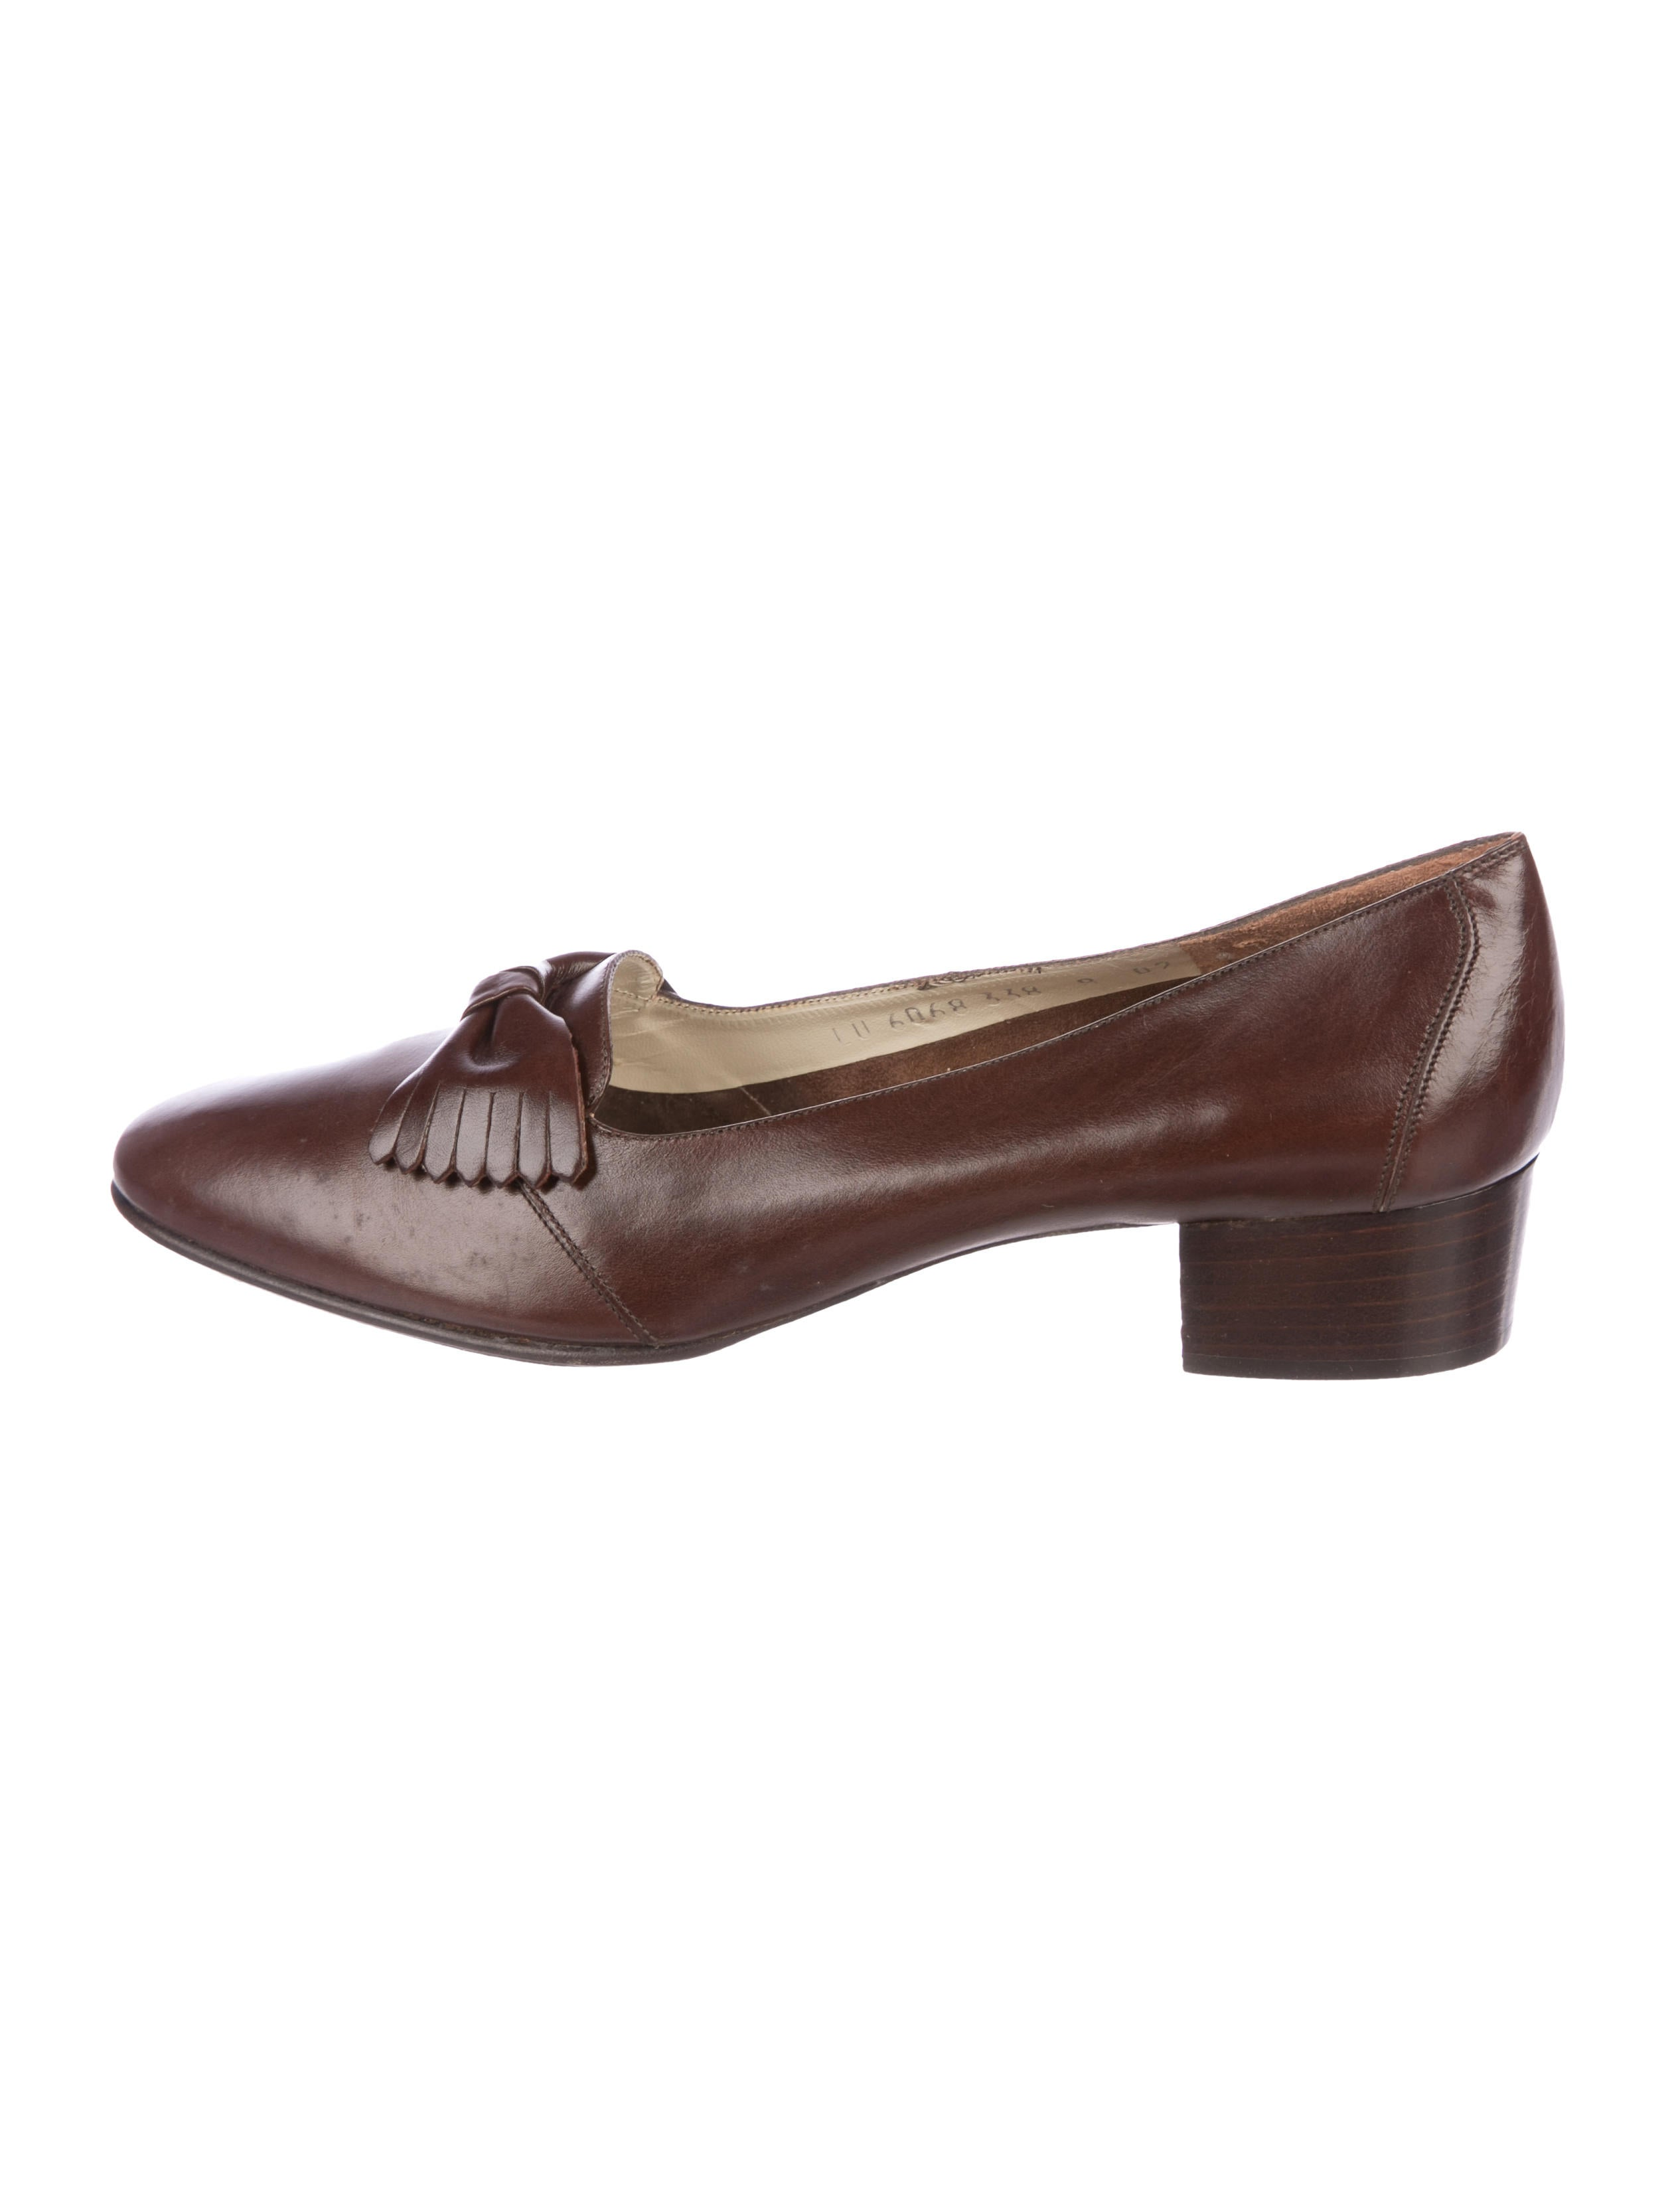 sale pre order Salvatore Ferragamo Gildab Bow Pumps w/ Tags cheap sale clearance store free shipping sale online sale from china sale visit Ph4KrK8